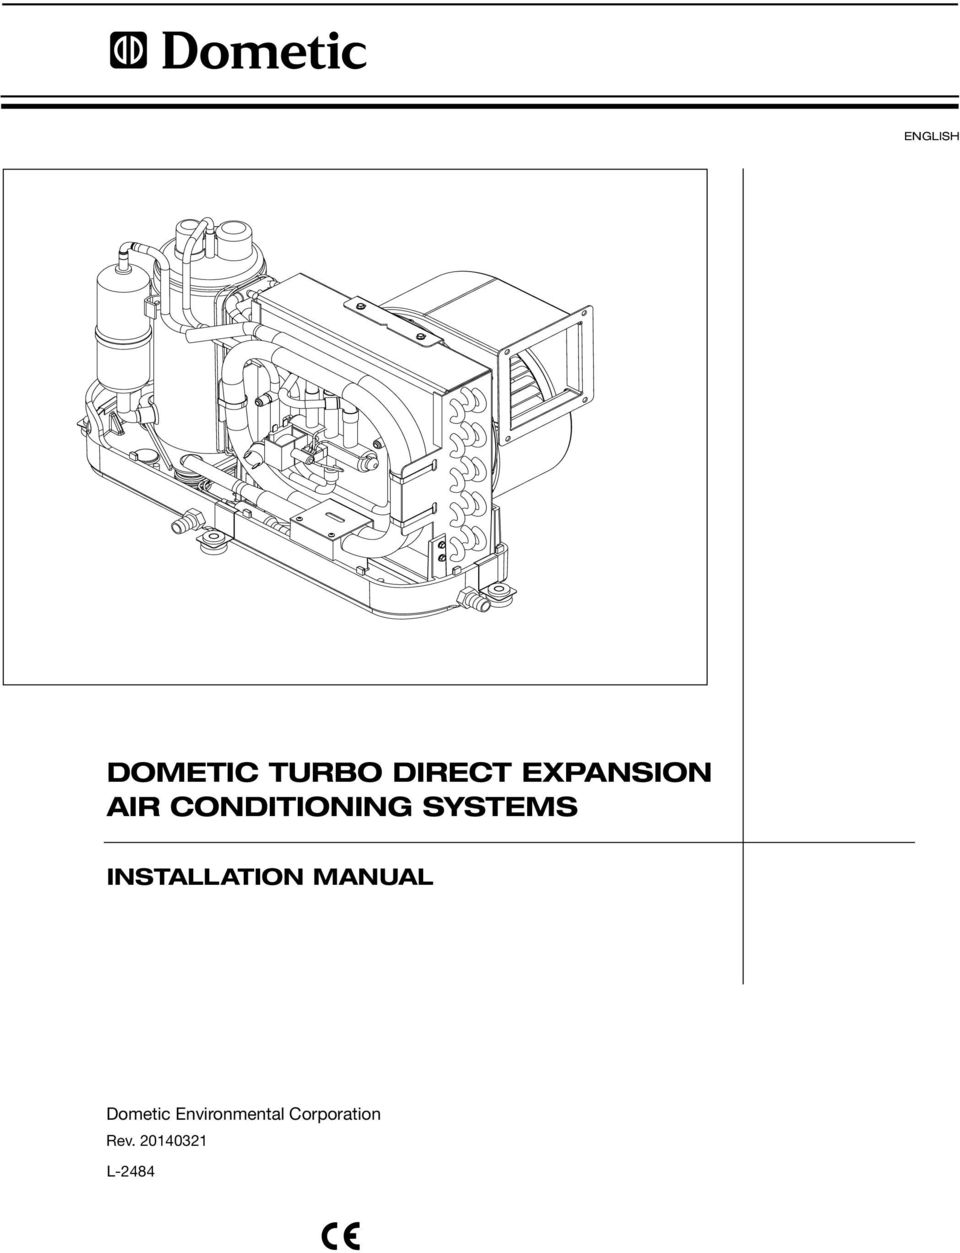 Dometic turbo Direct expansion - PDF